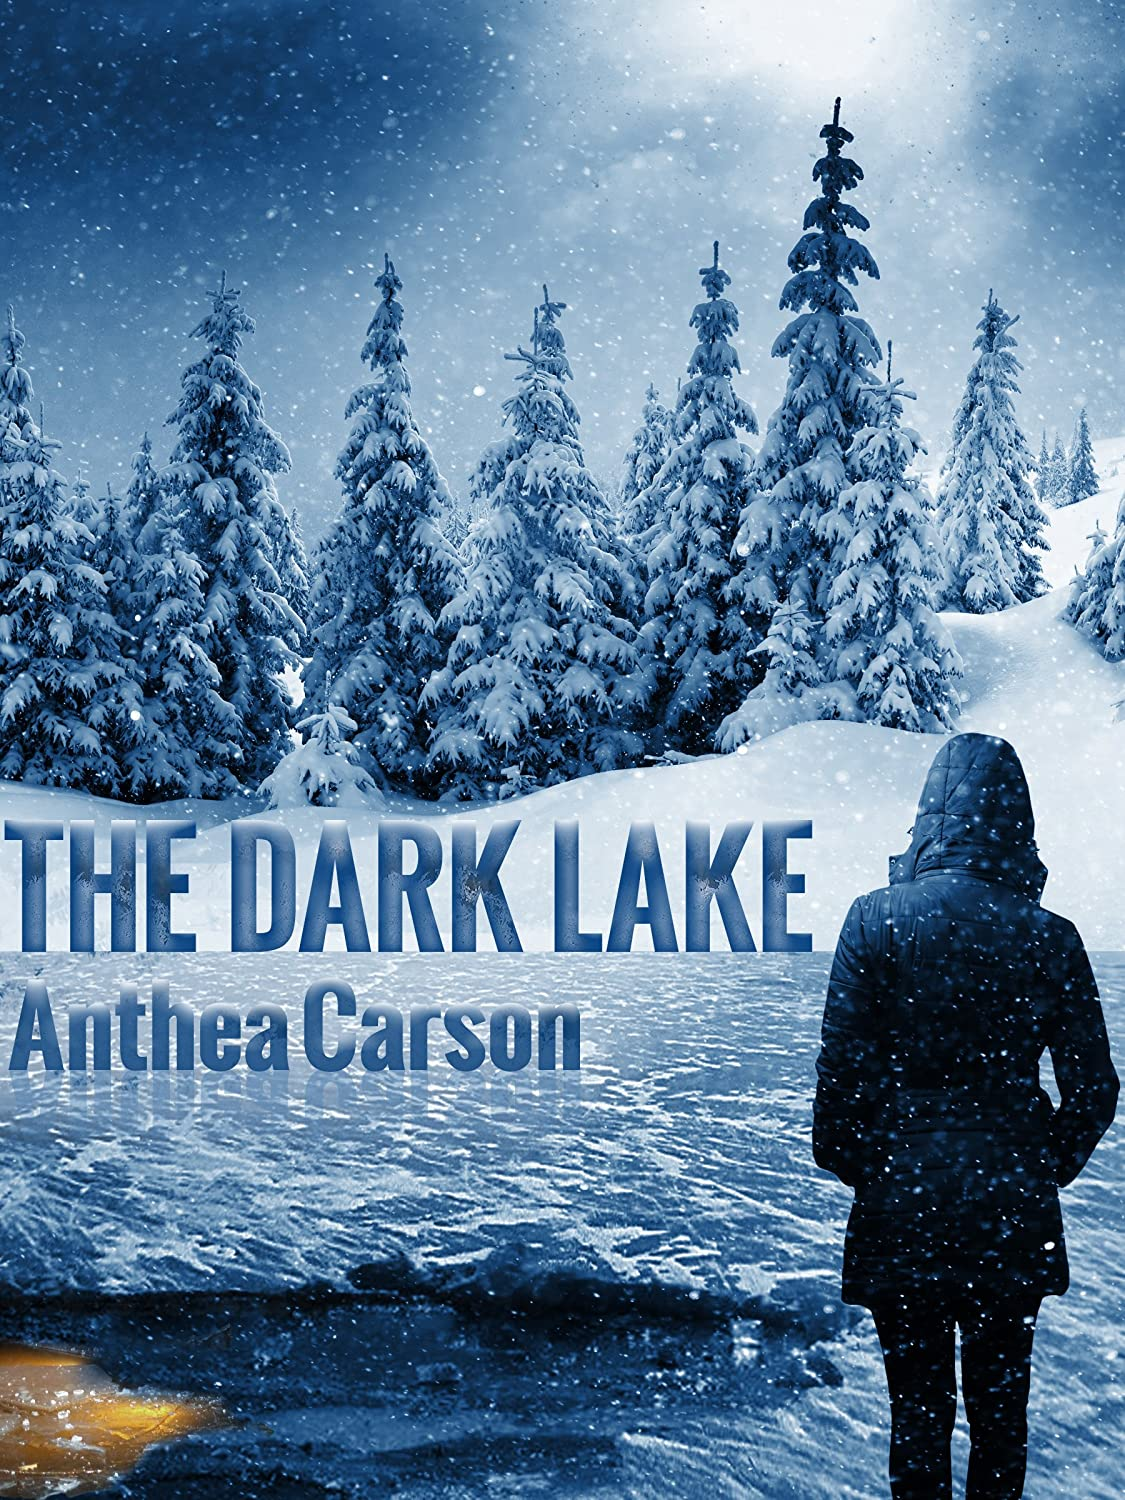 The Dark Lake Book Trailer